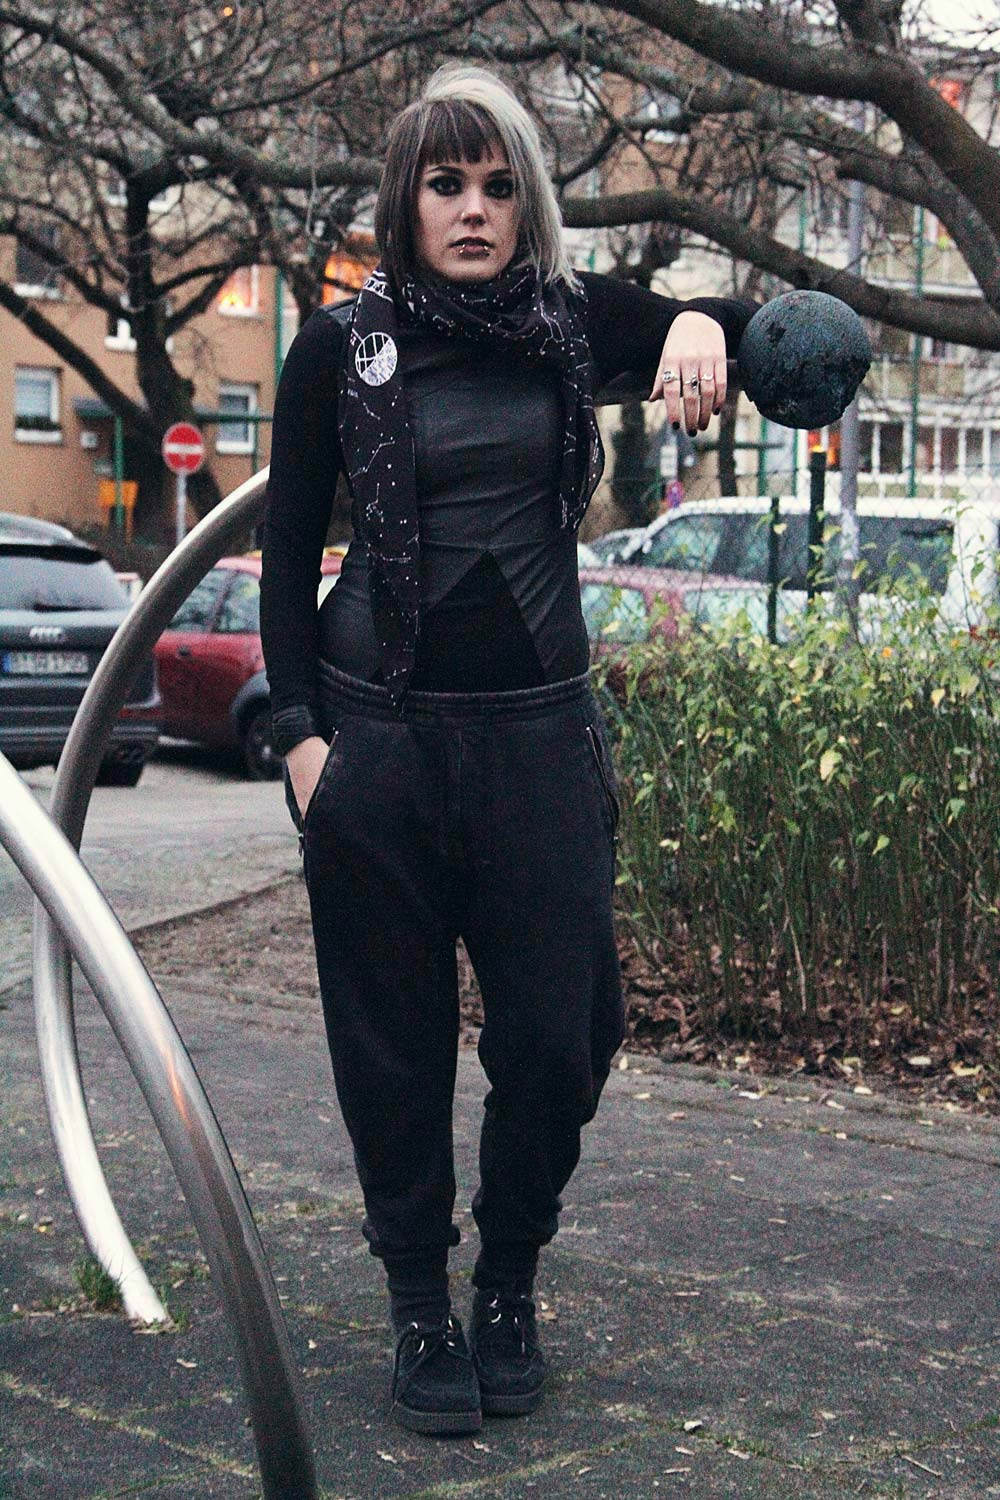 jog pants, jogginghose, tag der jogginghose, jogginghosentag, h&m, used, kunstleder, vegan leather, kleid, schal, creepers, underground, sterne, milchstraße, sternenkarte, piercings, gold, grey hair, graue haare, berlin, berlin fashion, berlin streetstyle, berlin fashion blogger, blogger, fashion blogger, punk, grunge, punk fashion, grunge fashion, alternative, alternative fashion, alternative girl, altgirl, snakebites, girls with piercings, scenehair